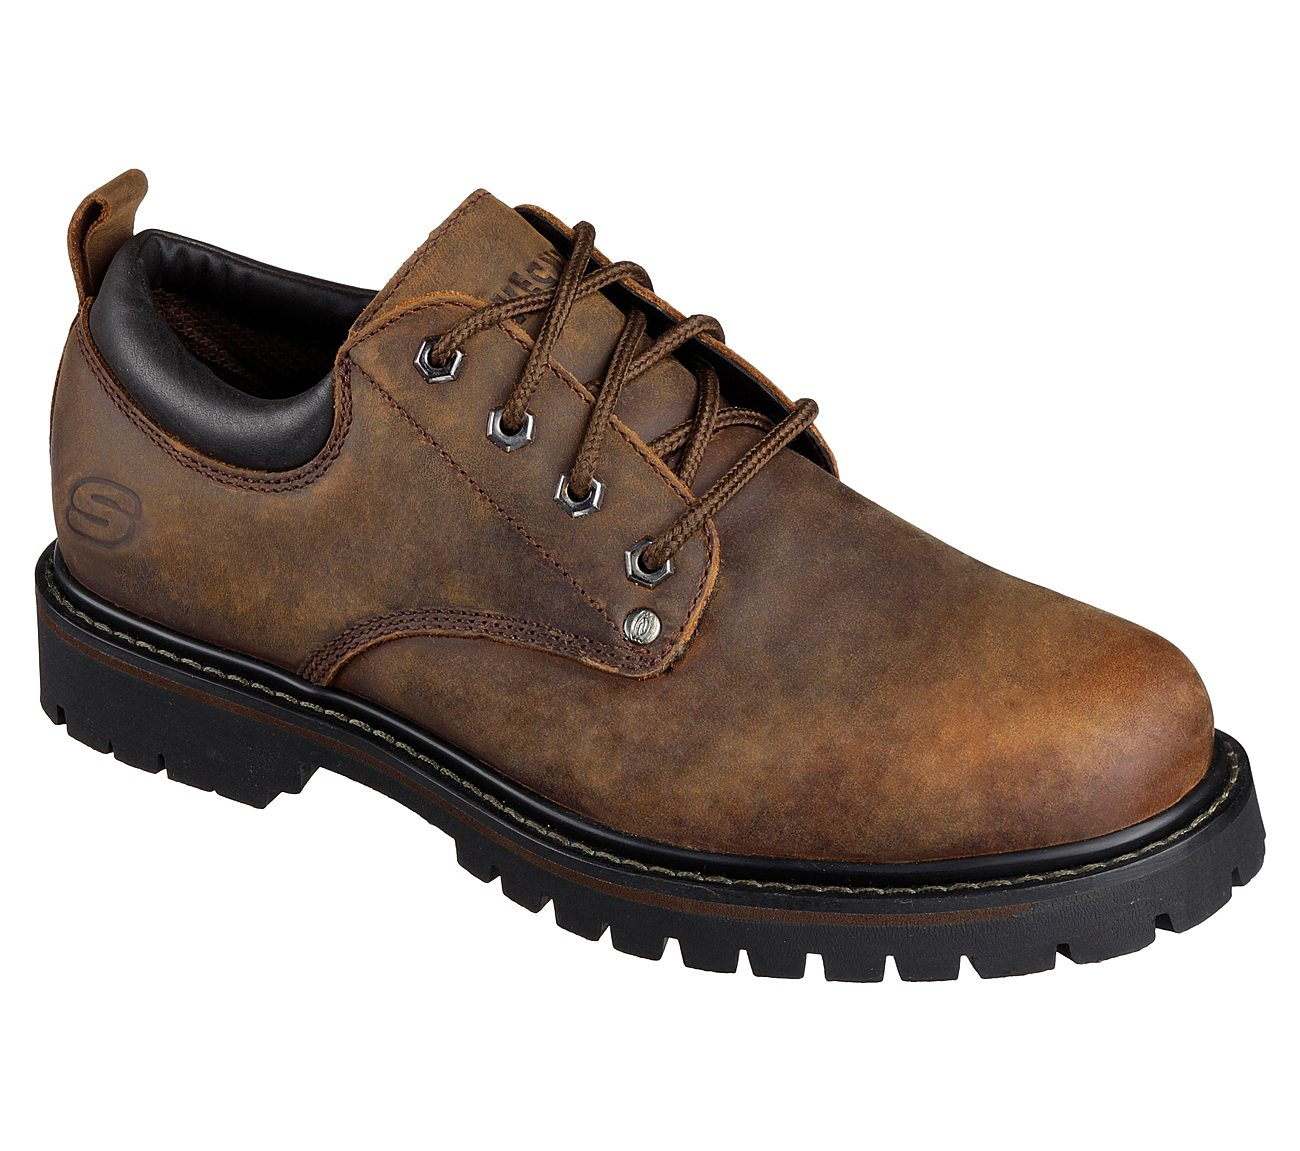 SKECHERS TOM CATS MENS SHOES 6618 CDB OXFORD STYLE SIZE 14